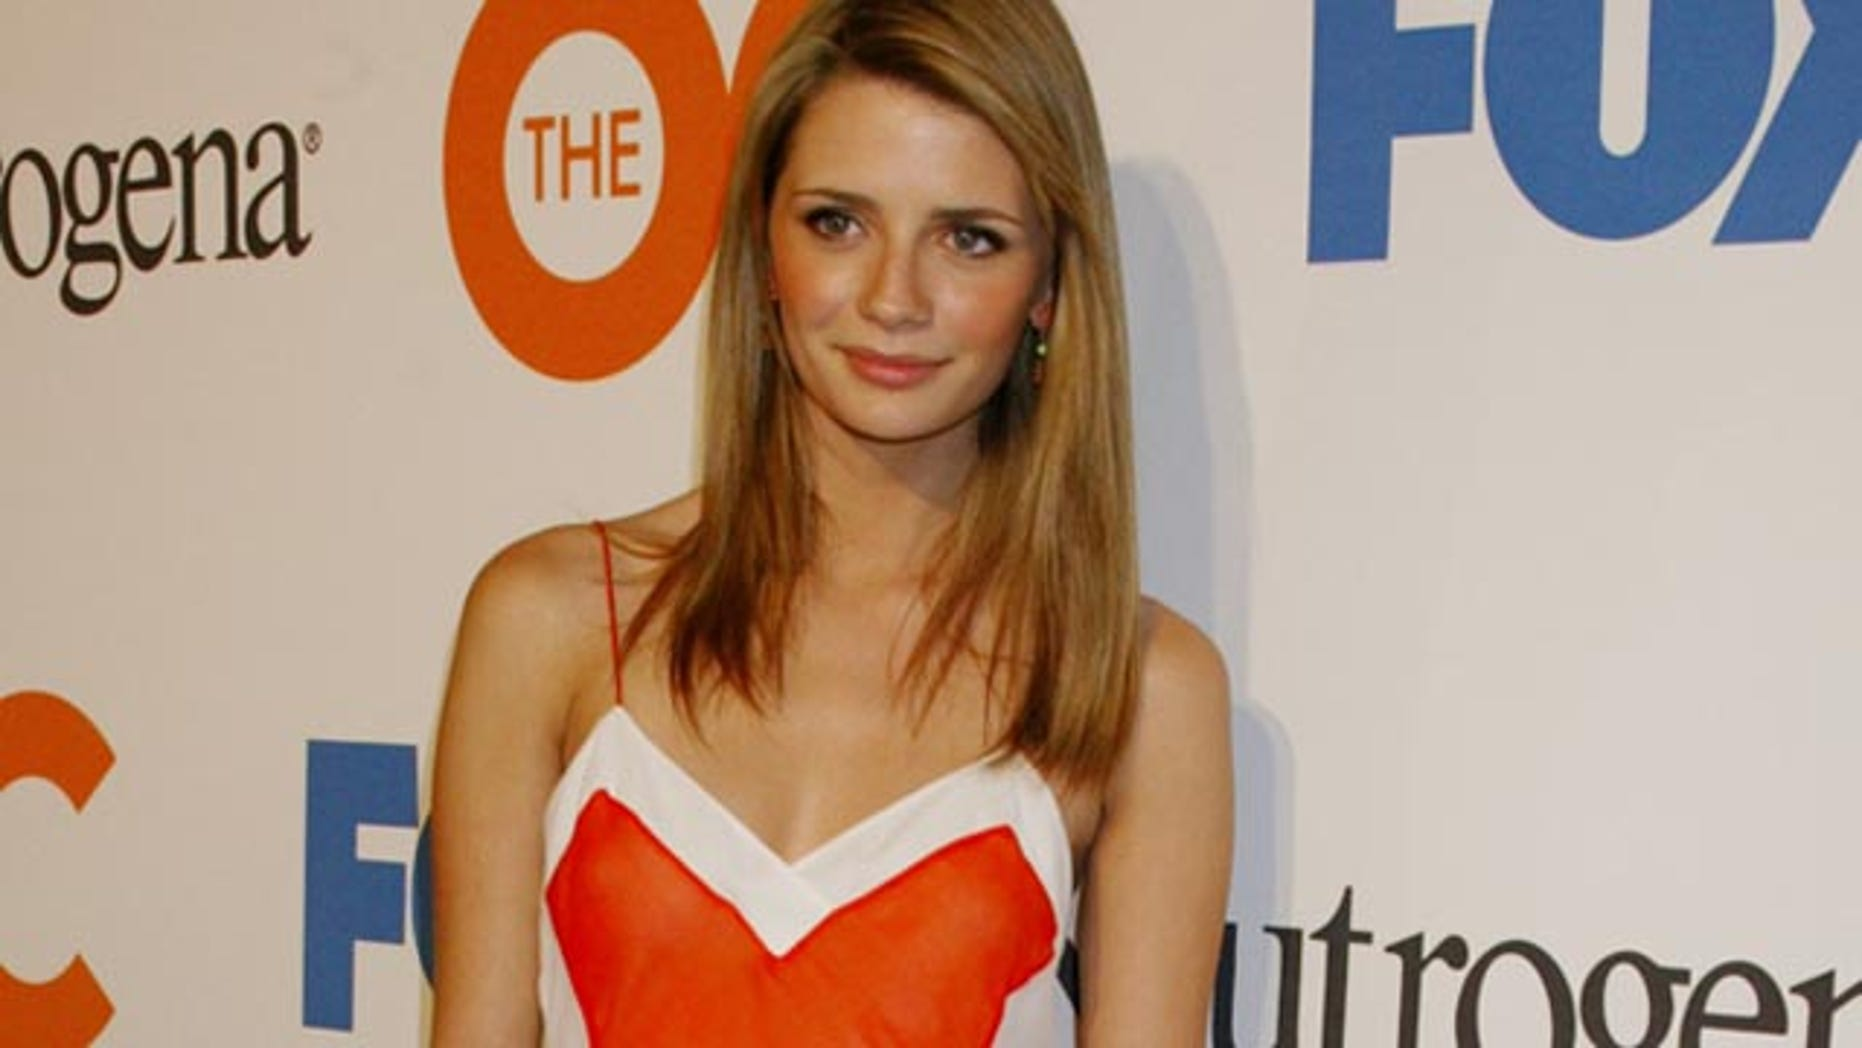 """Actress Mischa Barton, star of the Fox television network drama series """"The OC"""" poses as she arrives at a party celebrating the season finale of the popular series in Hollywood, April 20, 2004. The show is an ensemble drama revolving around the young adult community of the Orange County area in Southern California. REUTERS/Fred Prouser  FSP"""